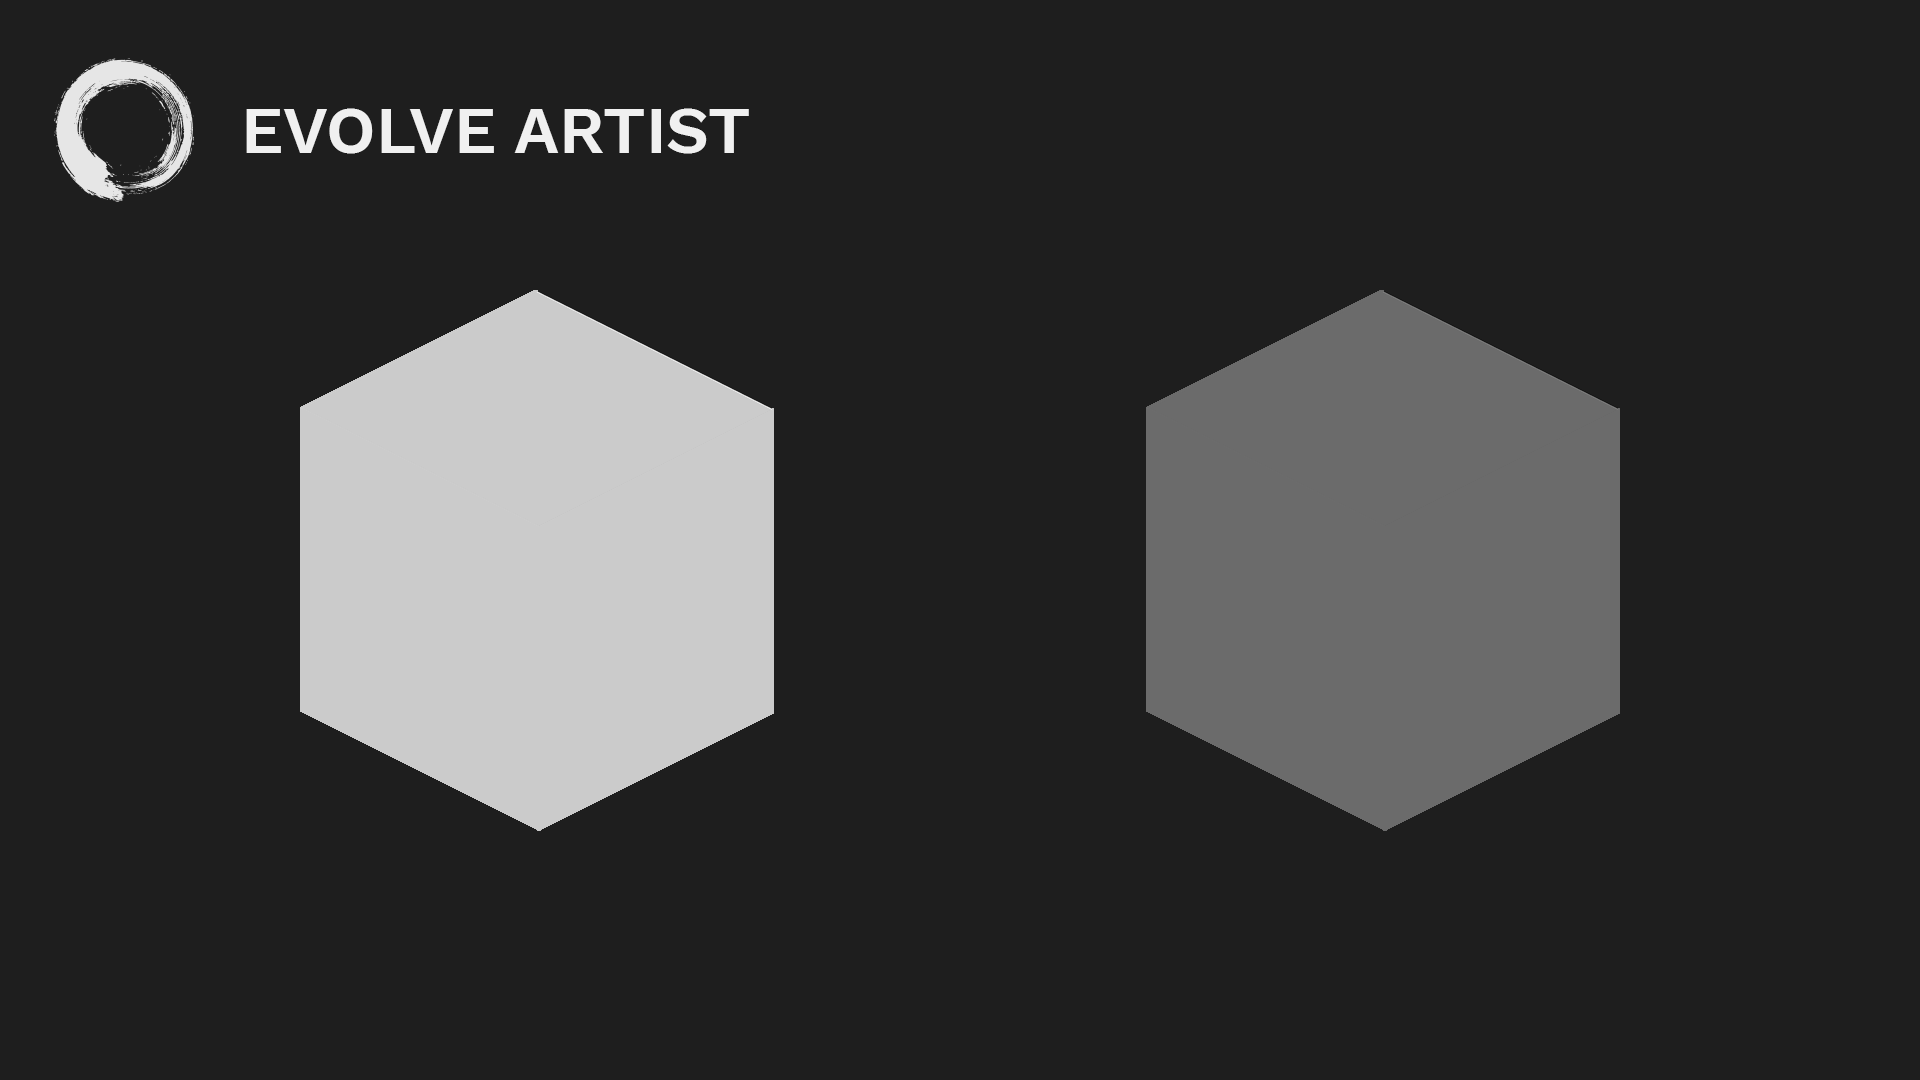 Two gray hexagons: without value, images lack form